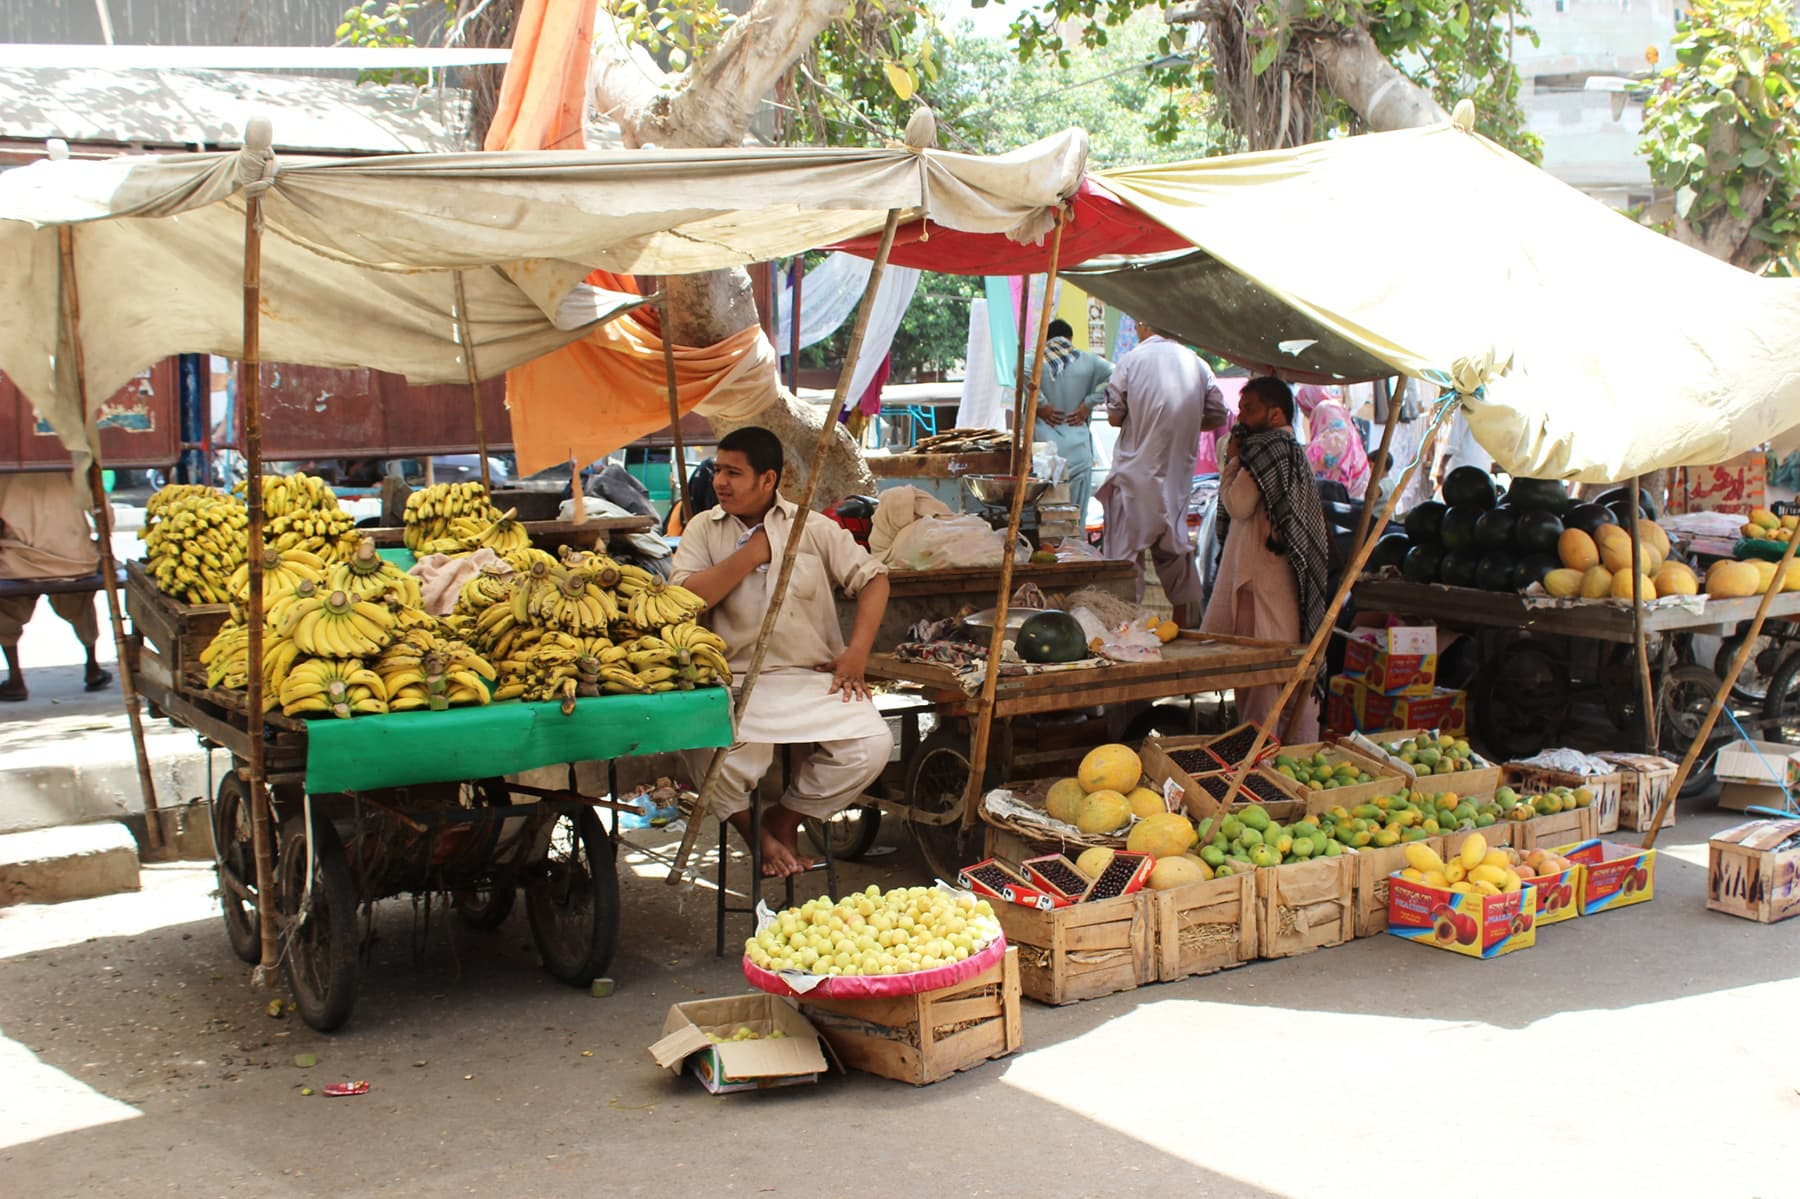 Fruit vendors in the market.